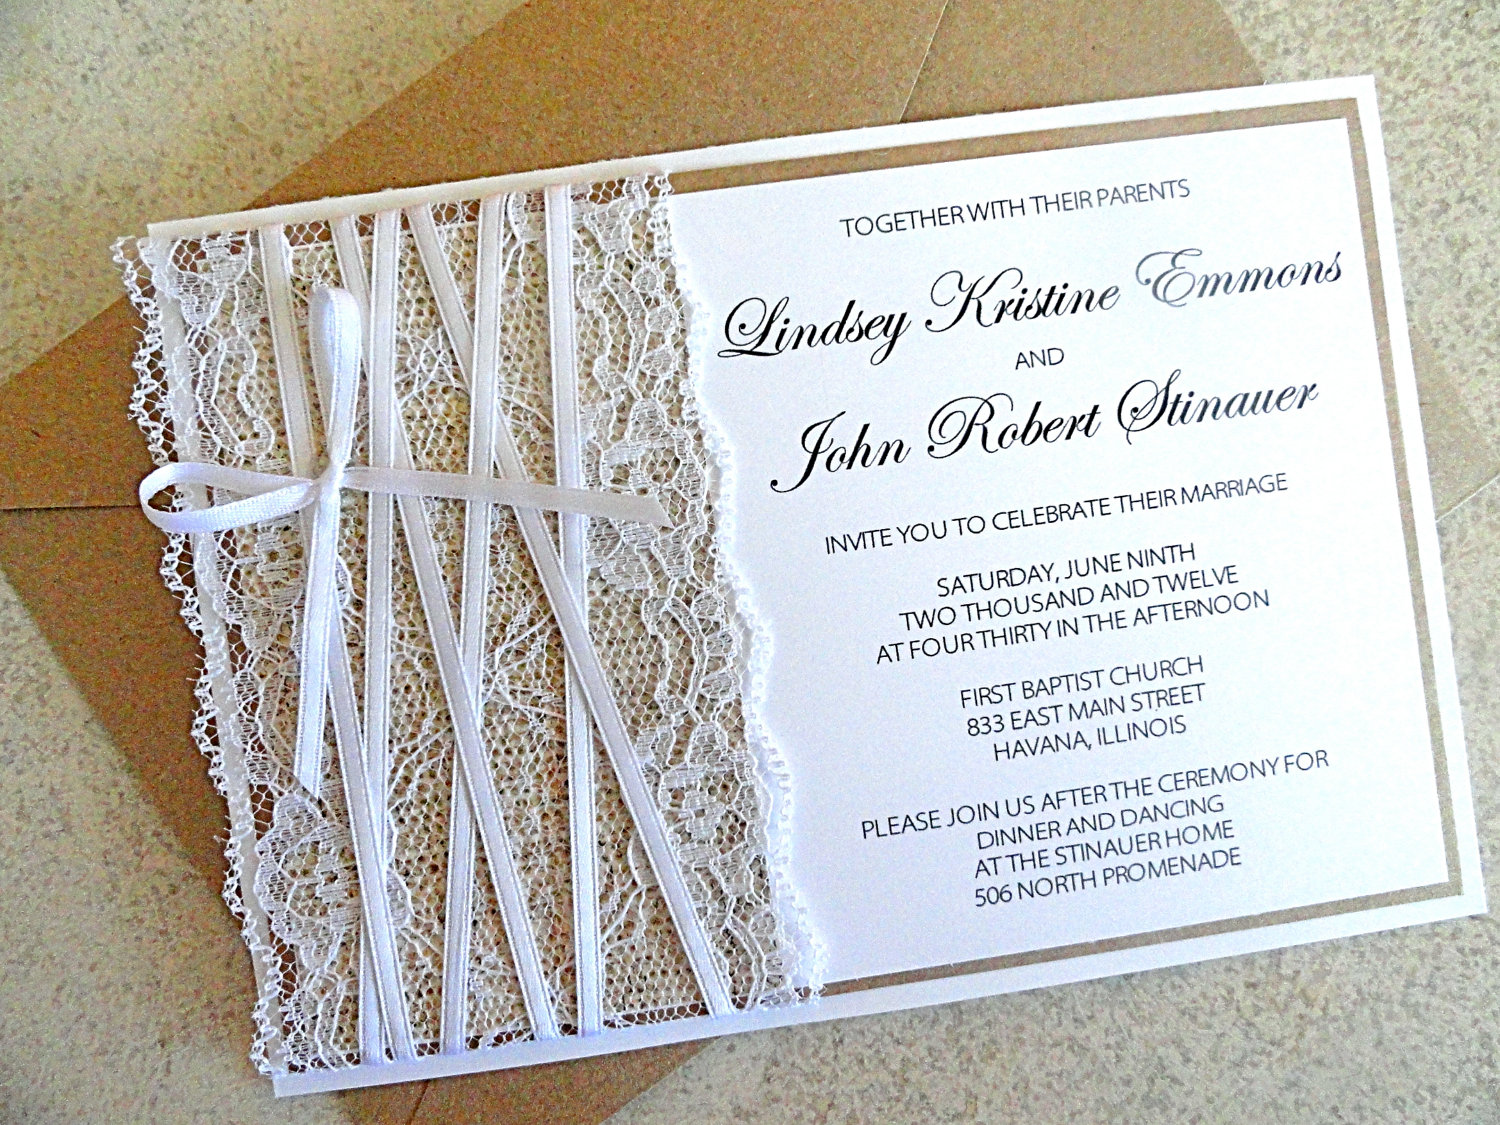 Wedding Invitations – Diy Wedding Invitations Lace